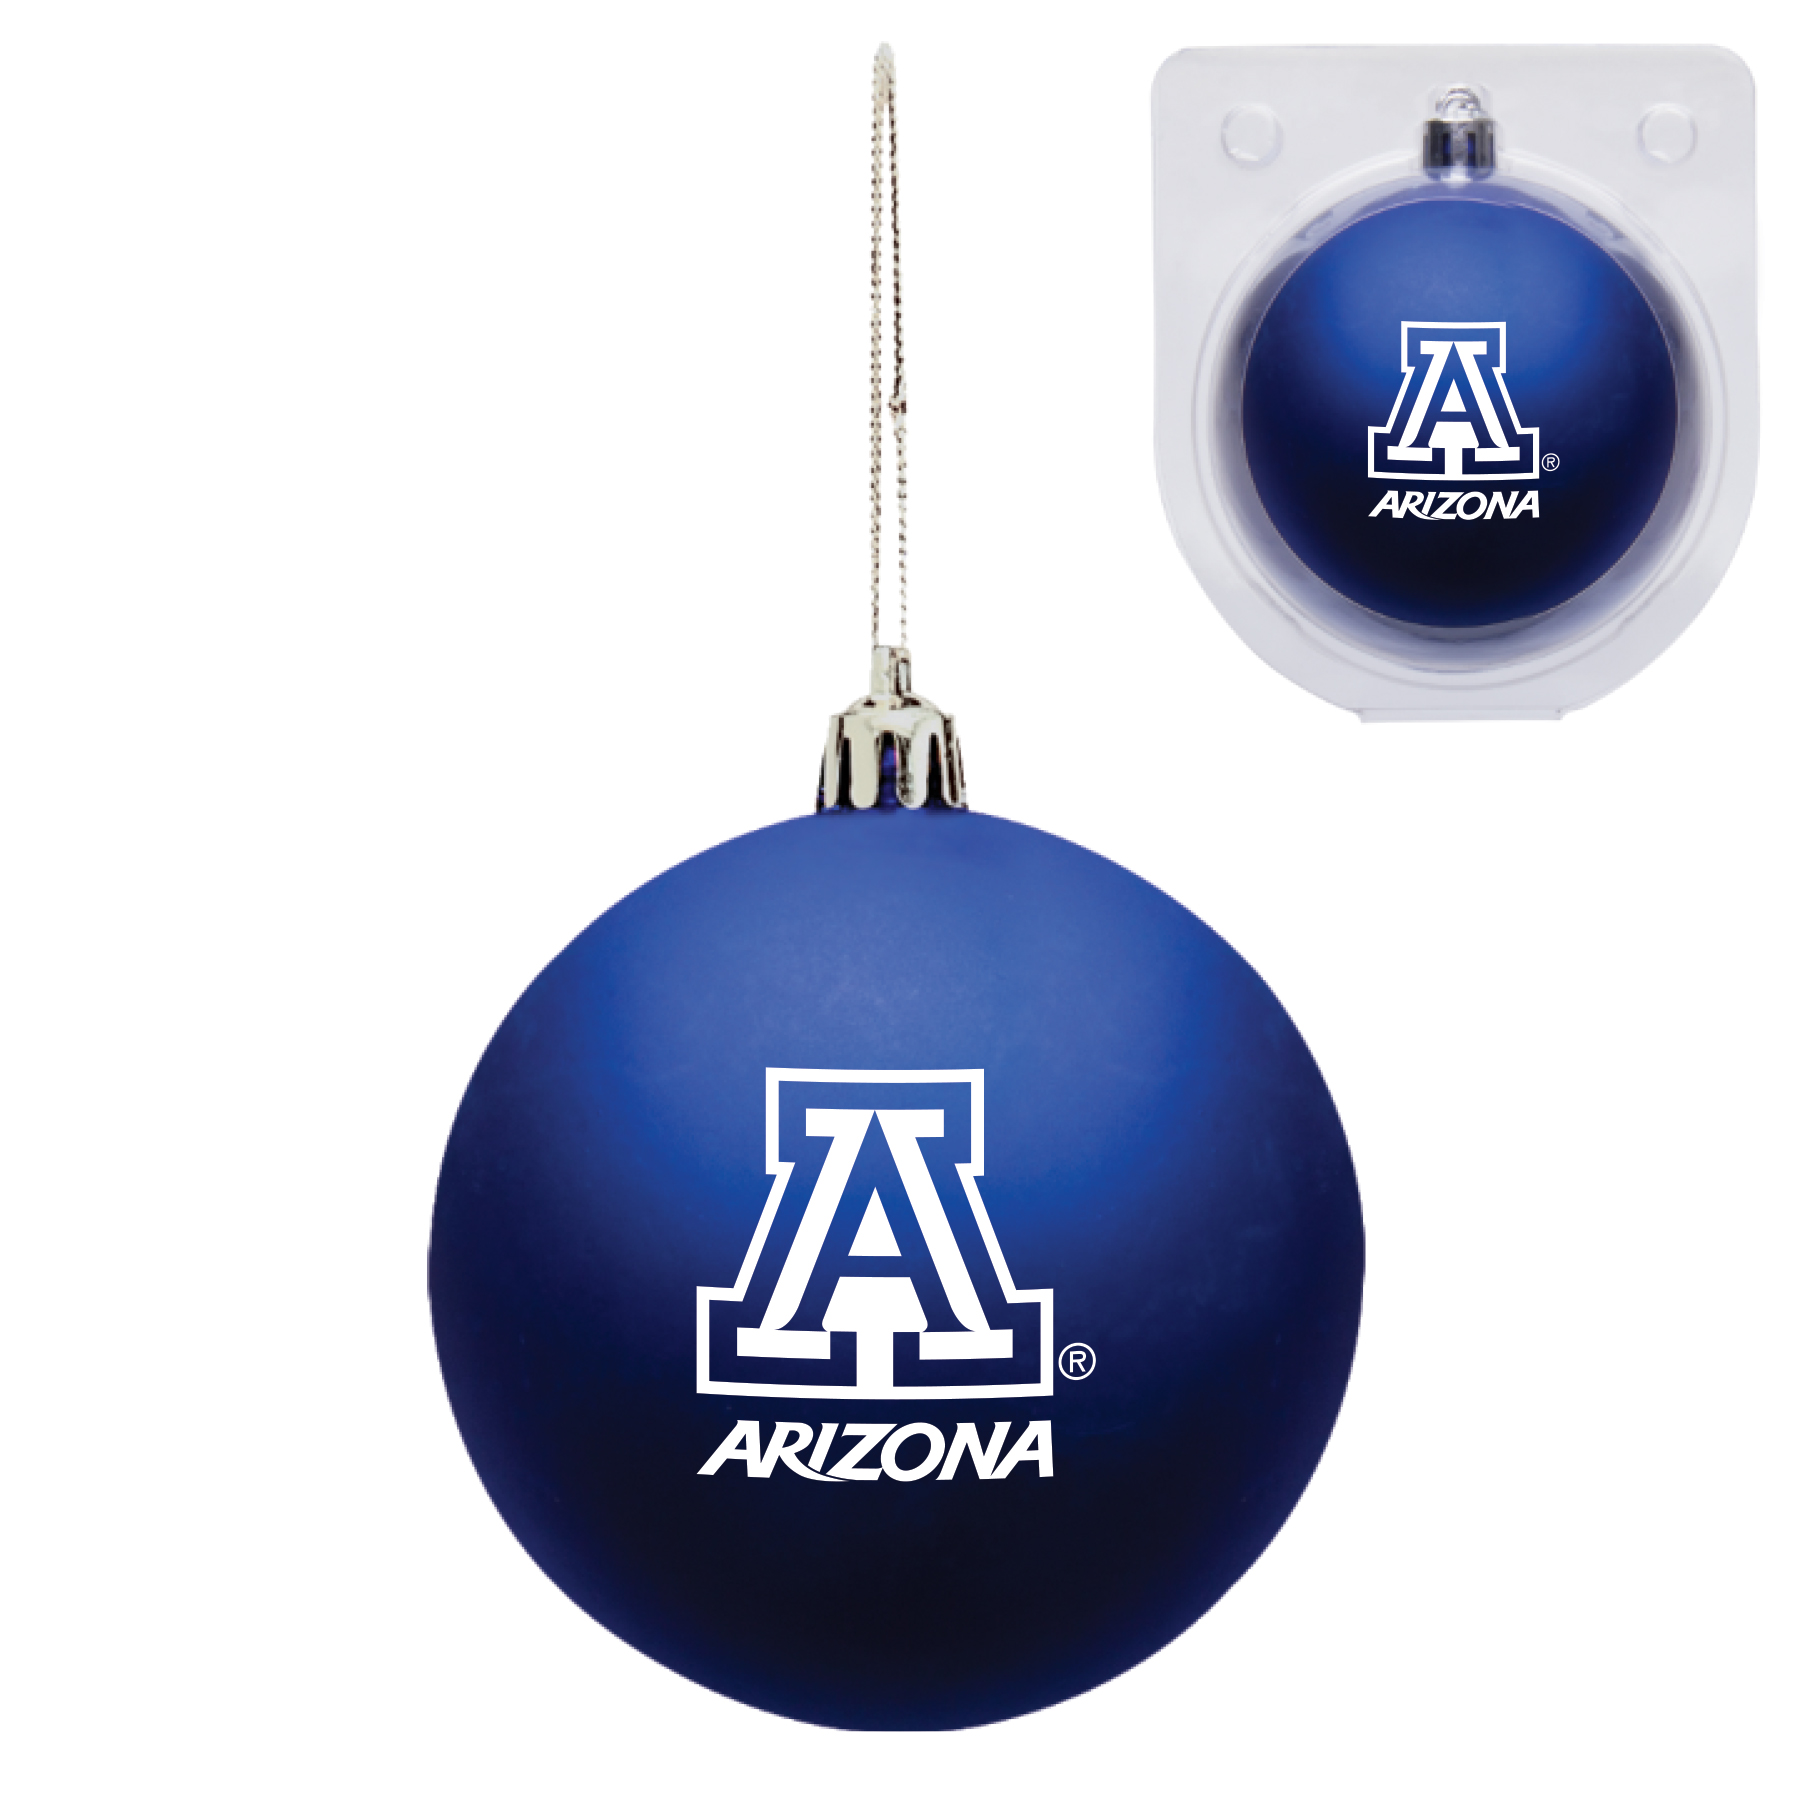 Image For Holiday: Arizona Shatter Resistant Ornament